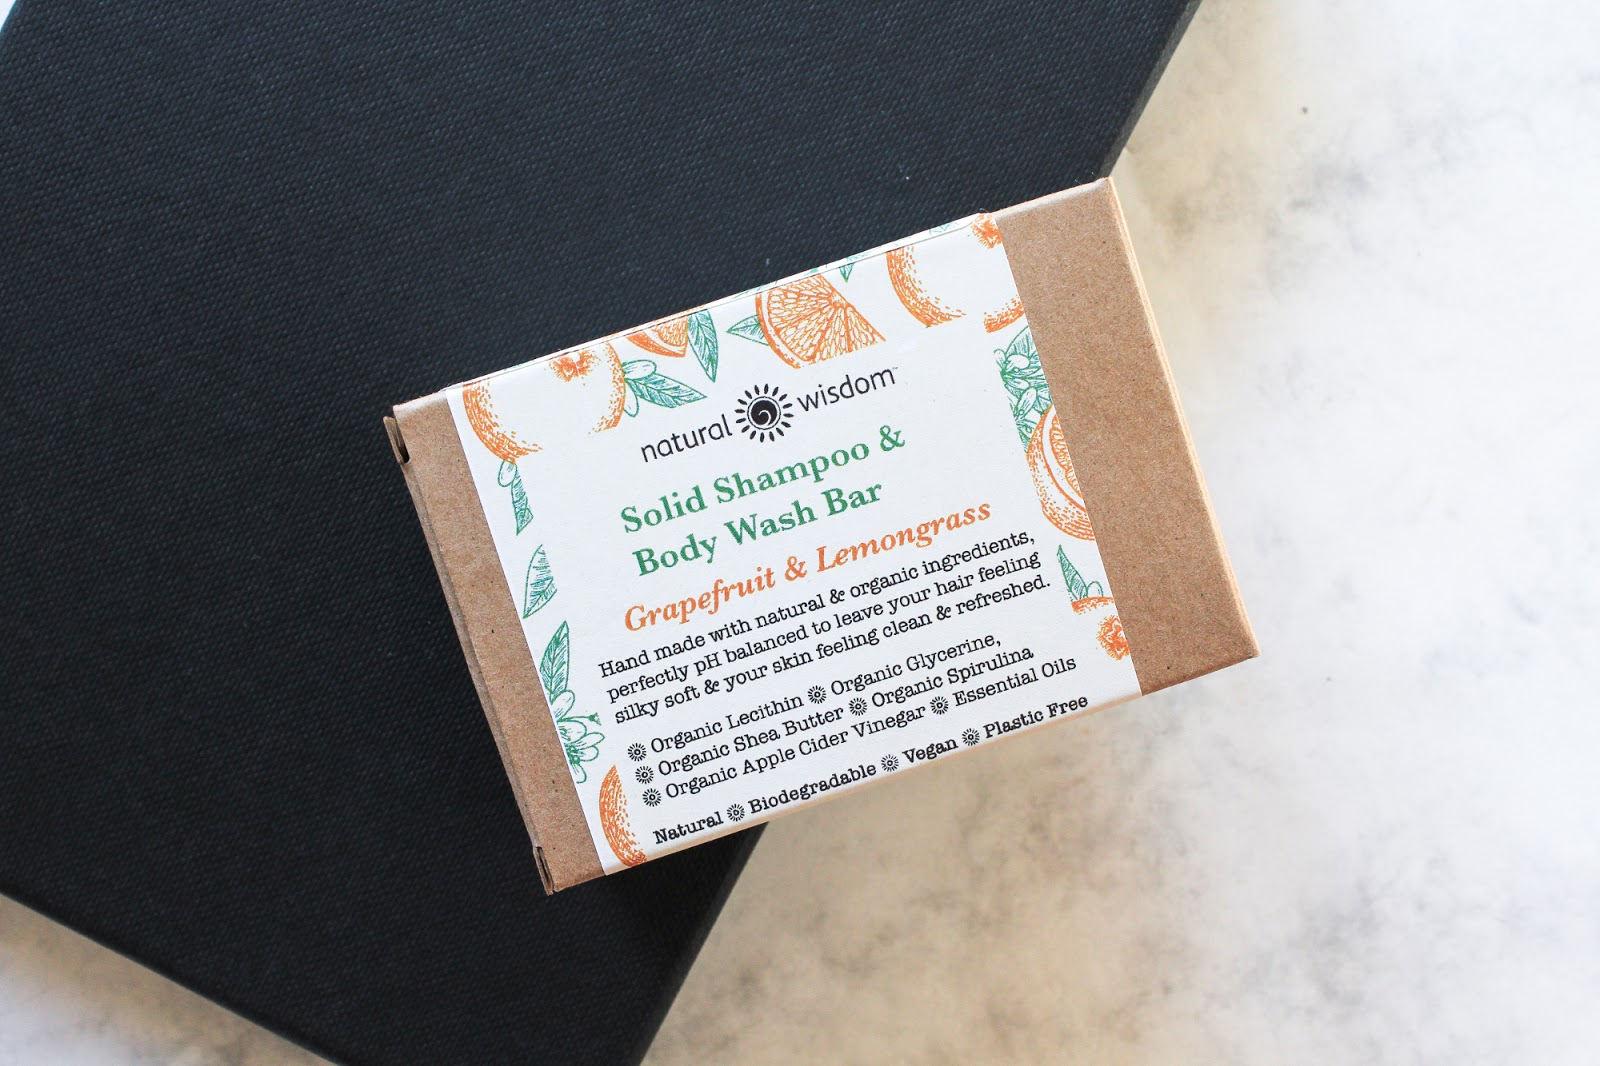 Natural Wisdom Spa Solid Shampoo & Body Wash Bar Grapefruit & Lemongrass. Vegan, plastic free, natural